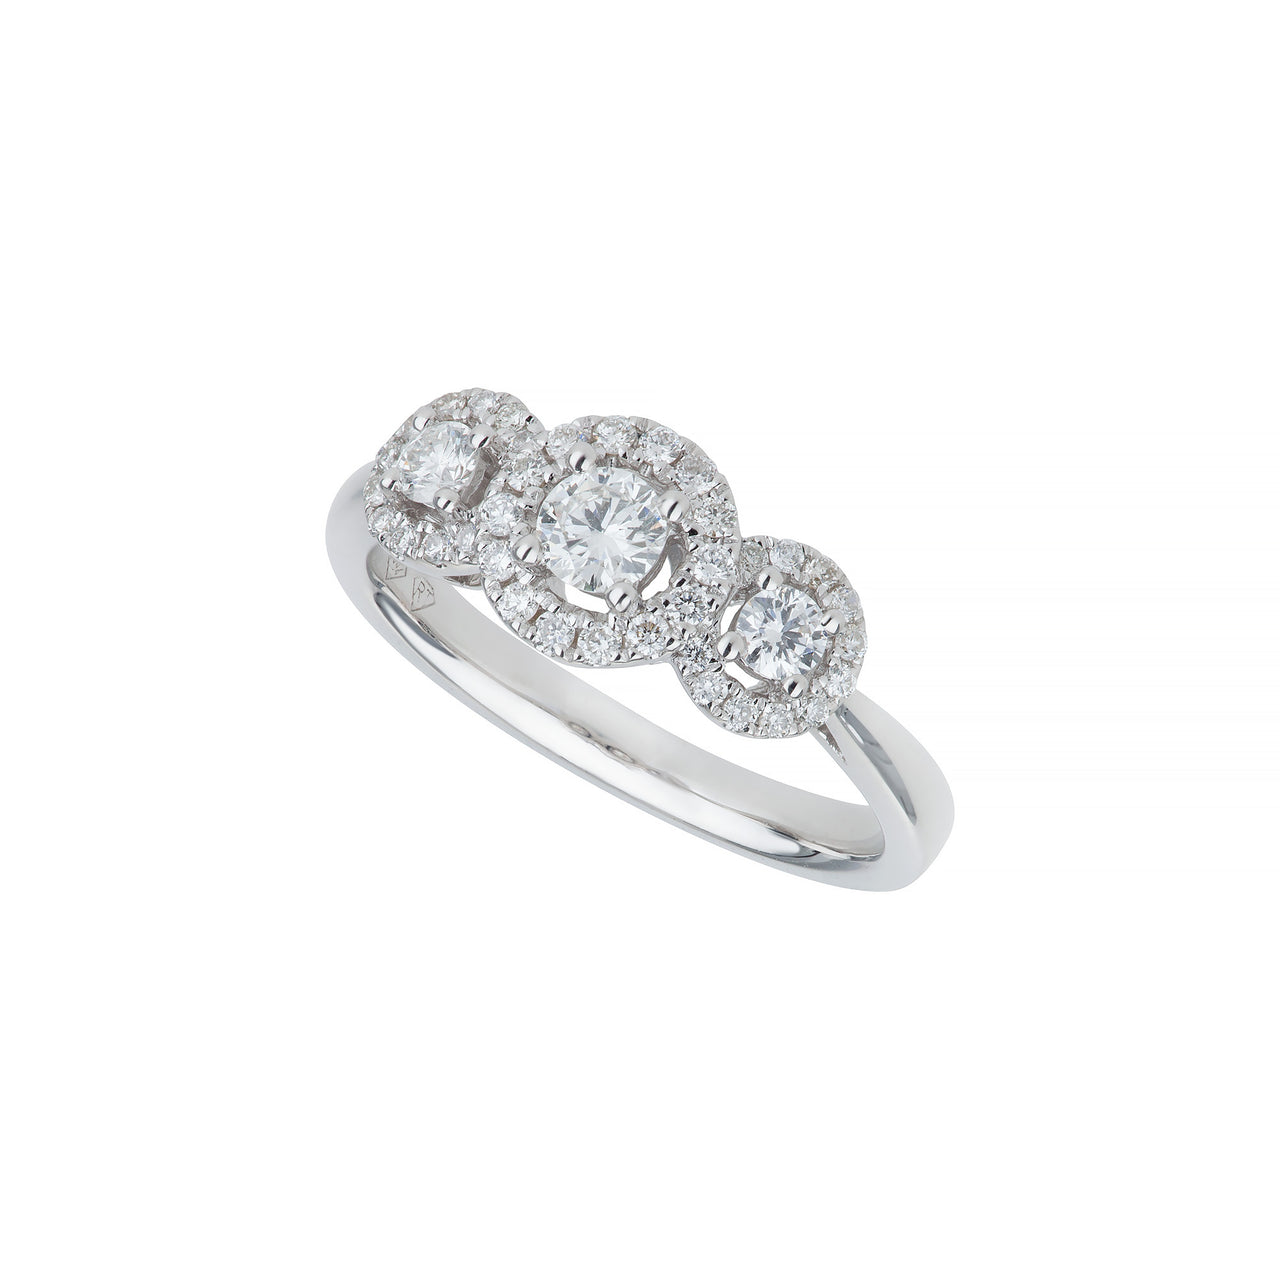 18ct white gold diamond 3 stone cluster ring